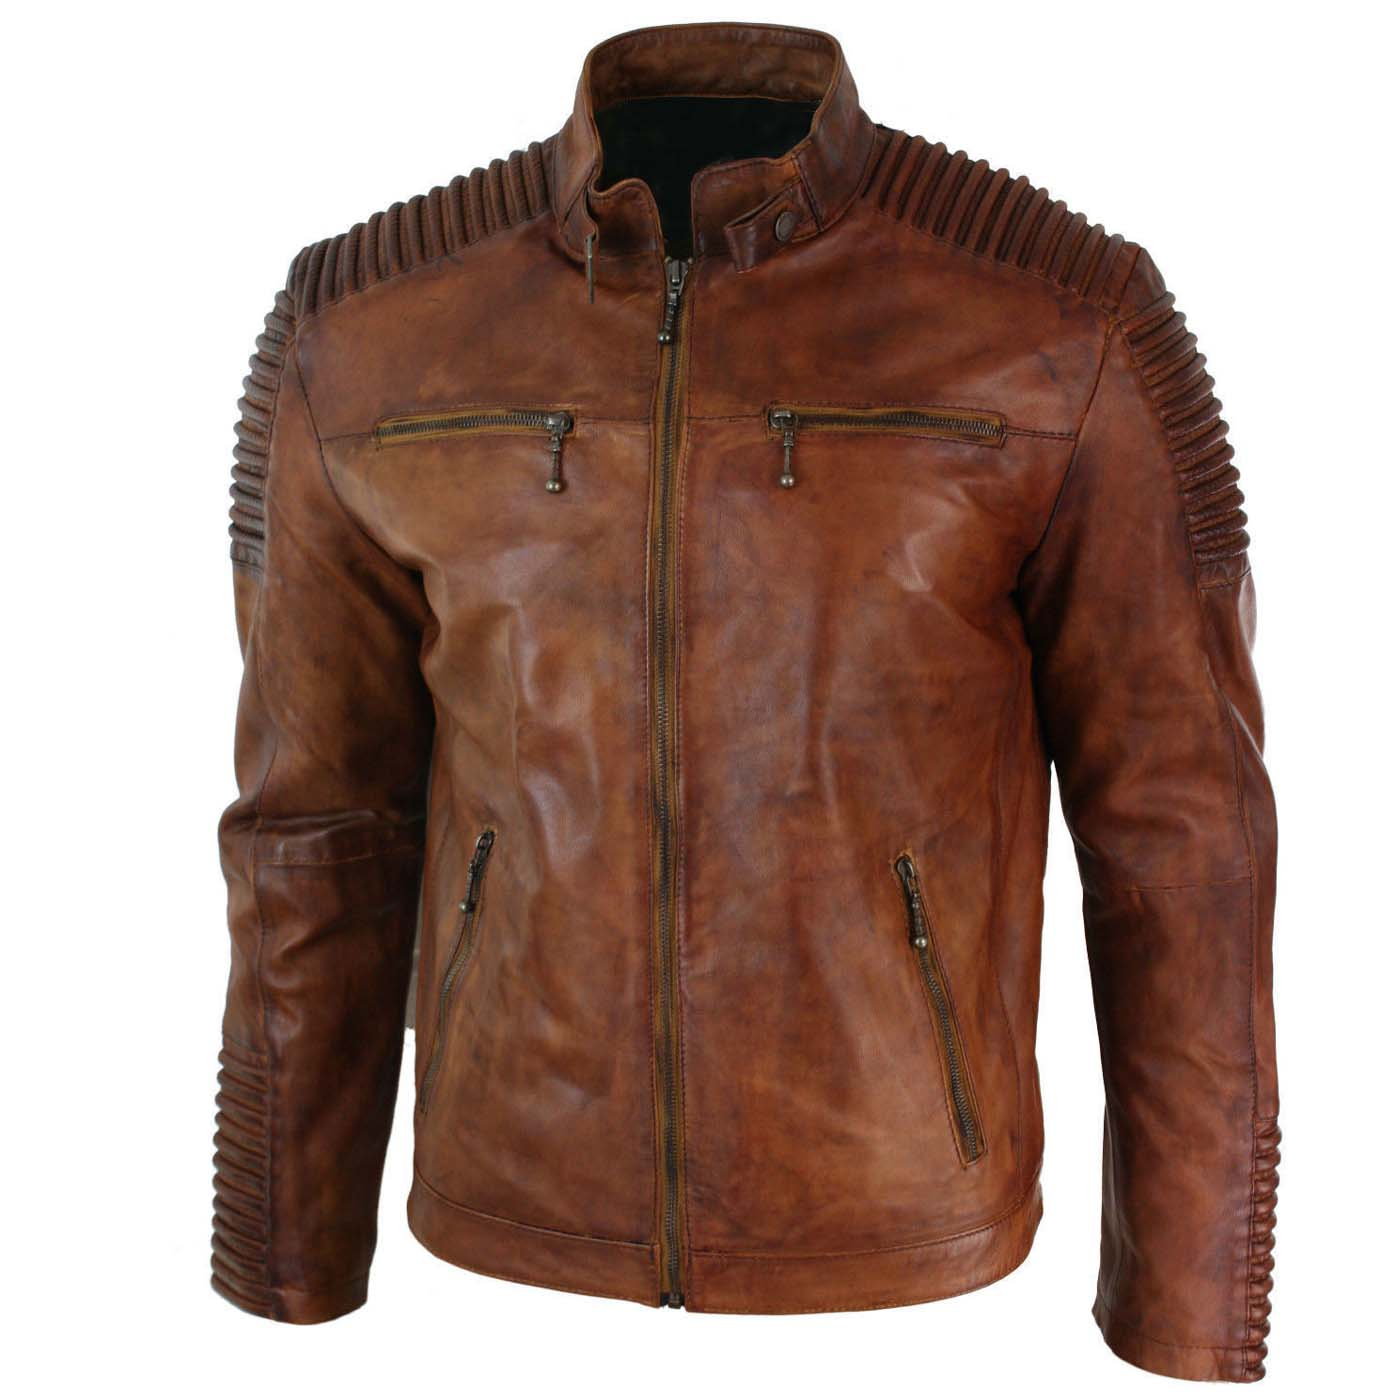 Mens-Biker-Vintage-Cafe-Racer-Wax-Distressed-Brown-Leather-Jacket-1